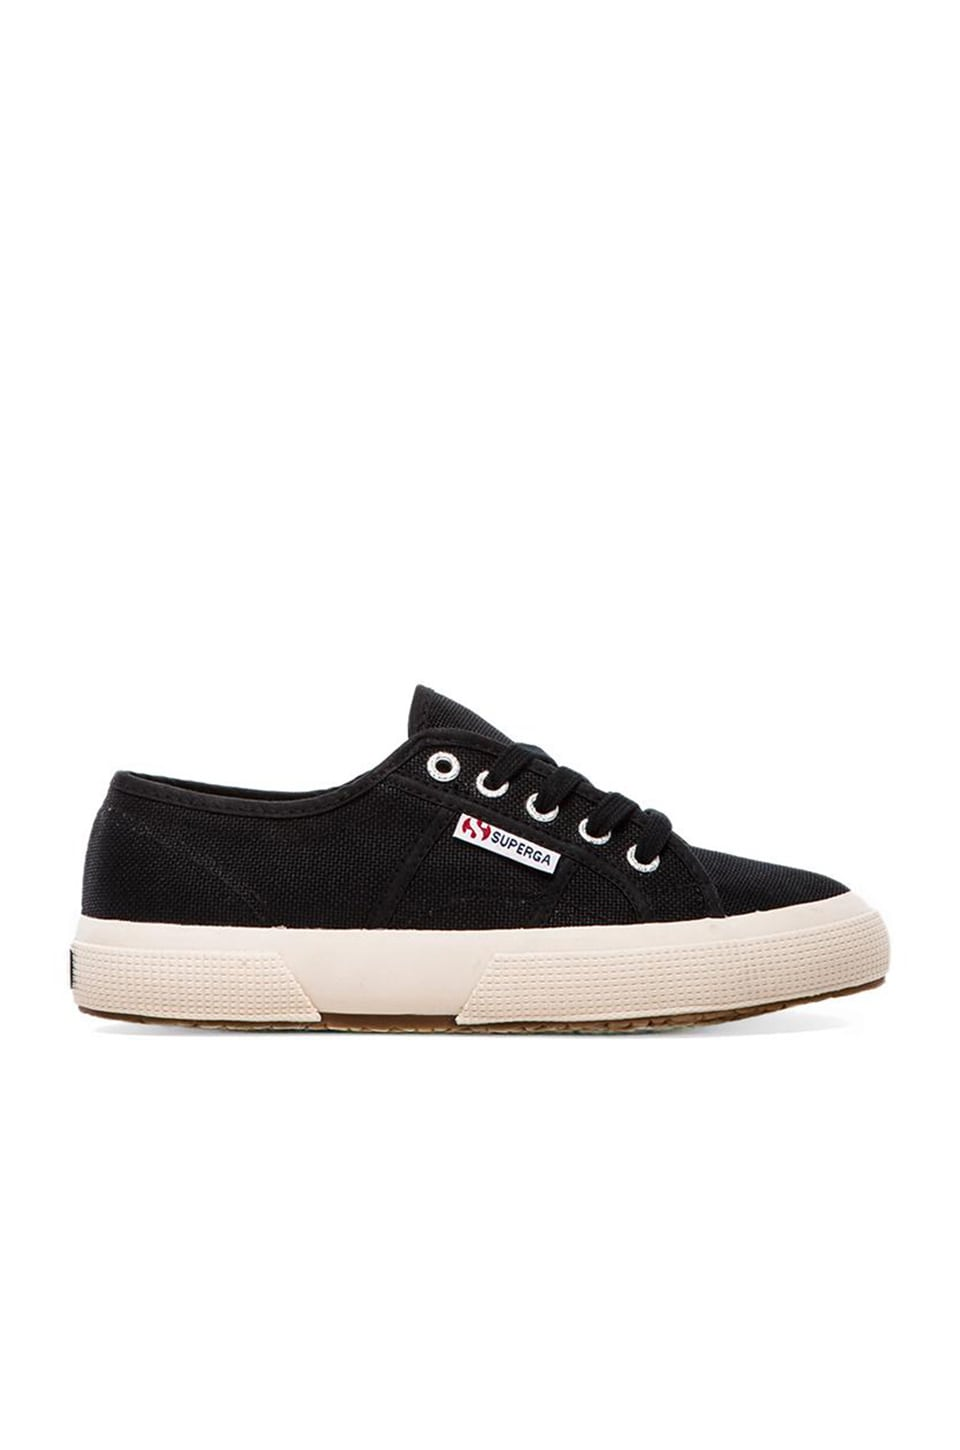 Superga Cotu Classic Sneaker in Black